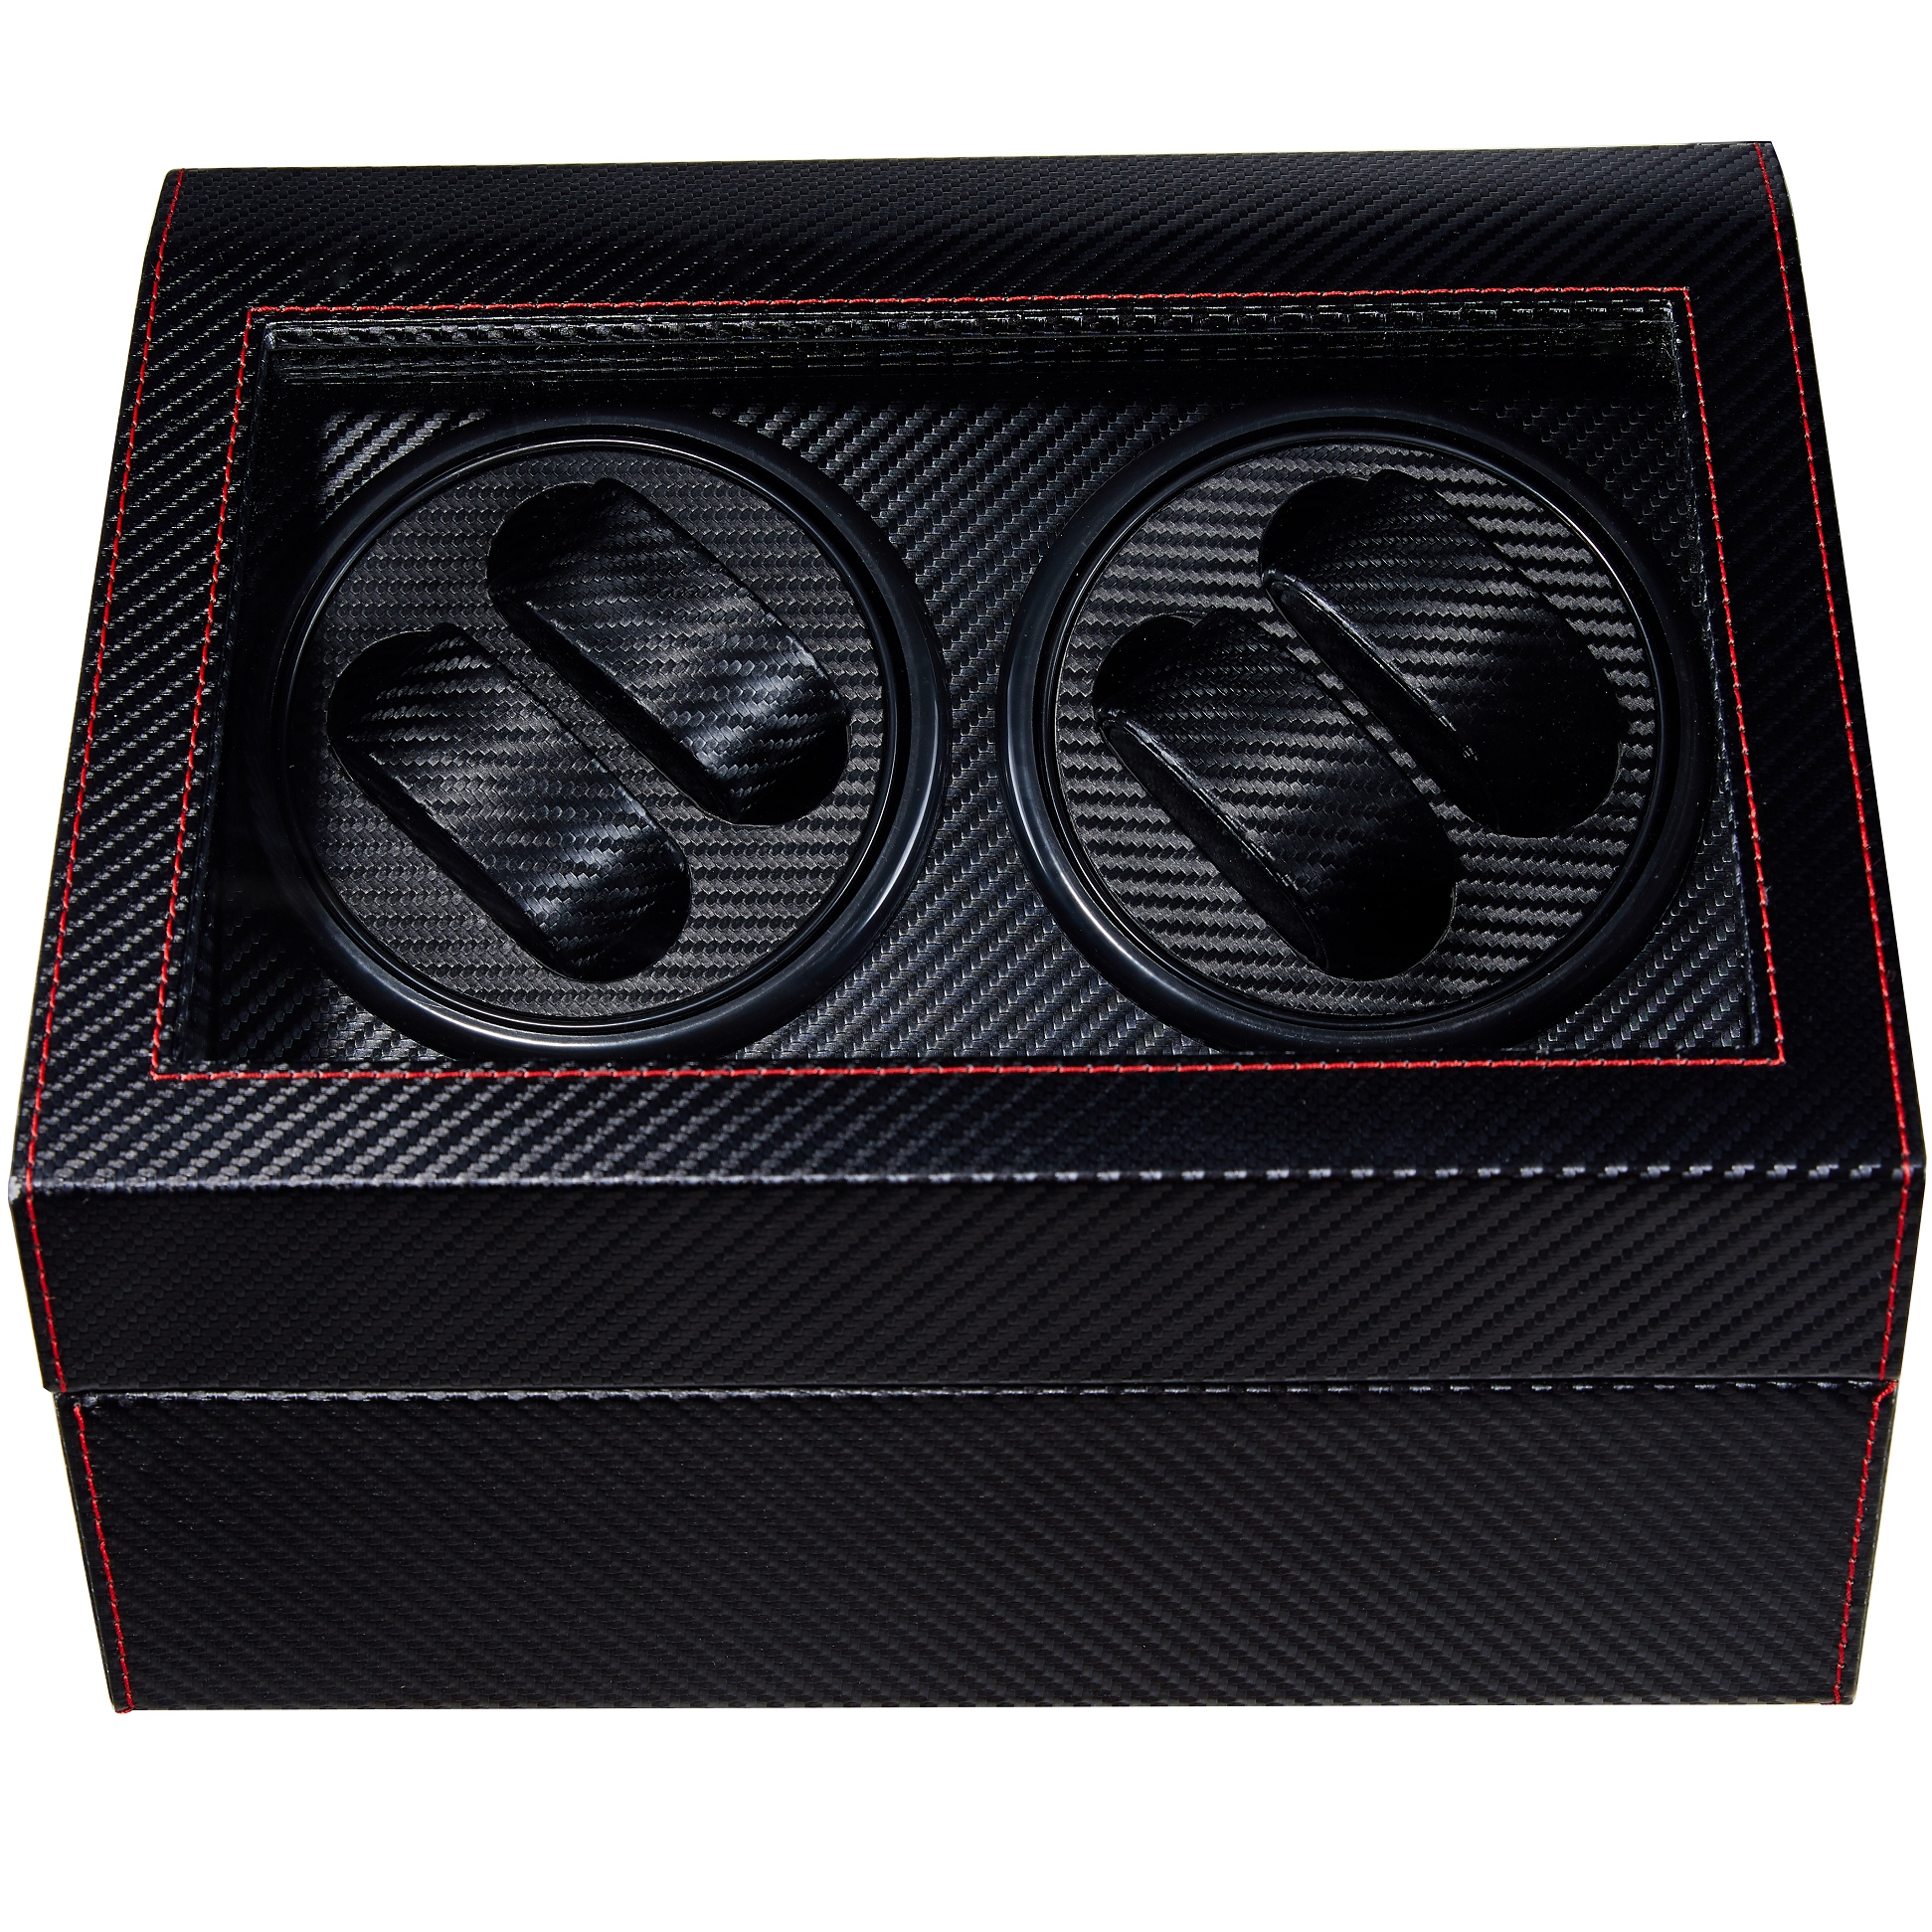 Black Stripe Automatic Watch Winder Box PU Leather Watch Winding Box Collection Display Double Head Silent Motor Box